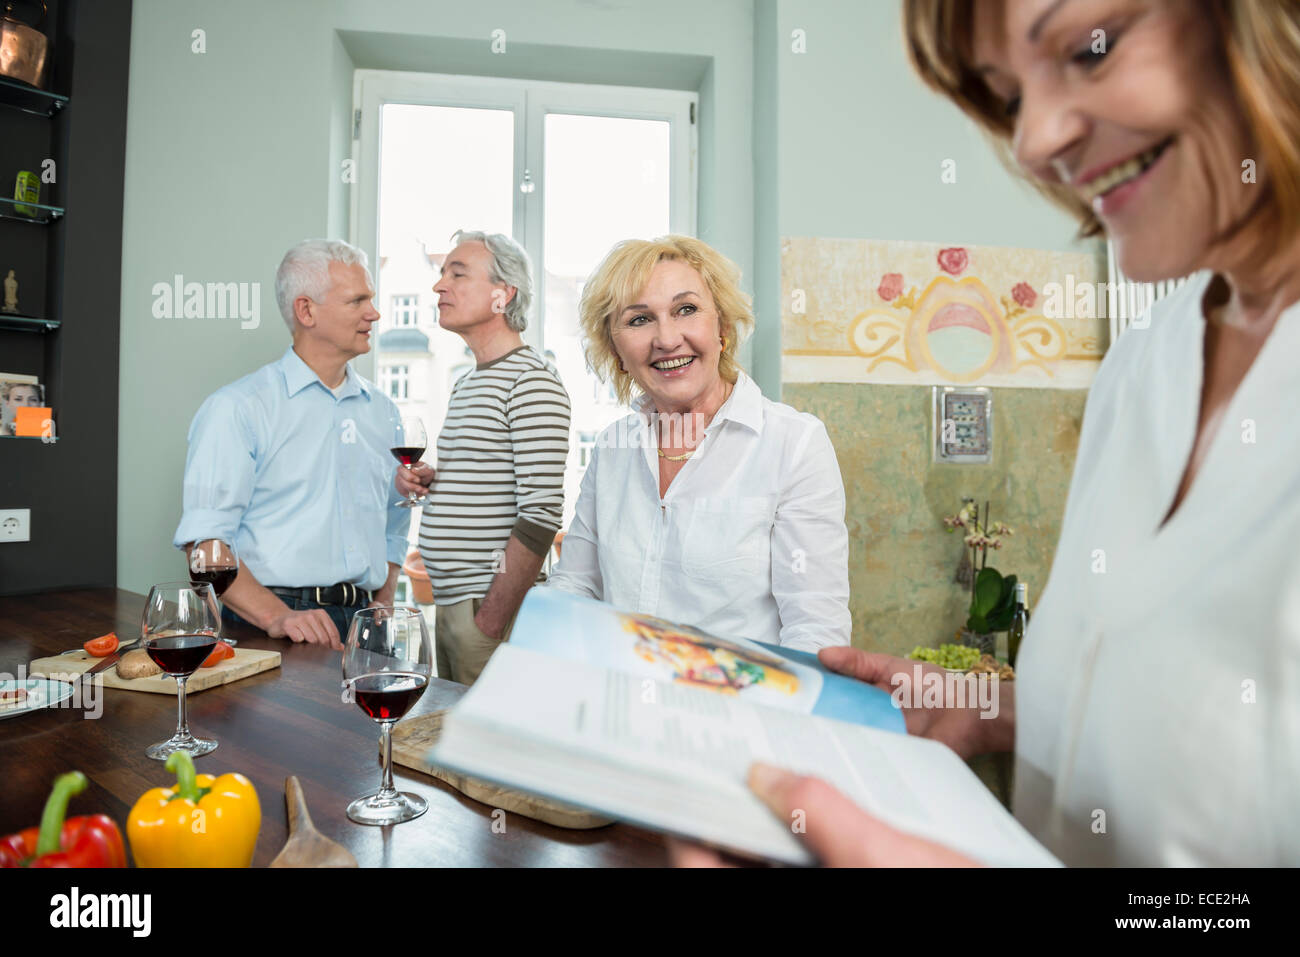 Senior group friends kitchen cooking drinking wine - Stock Image